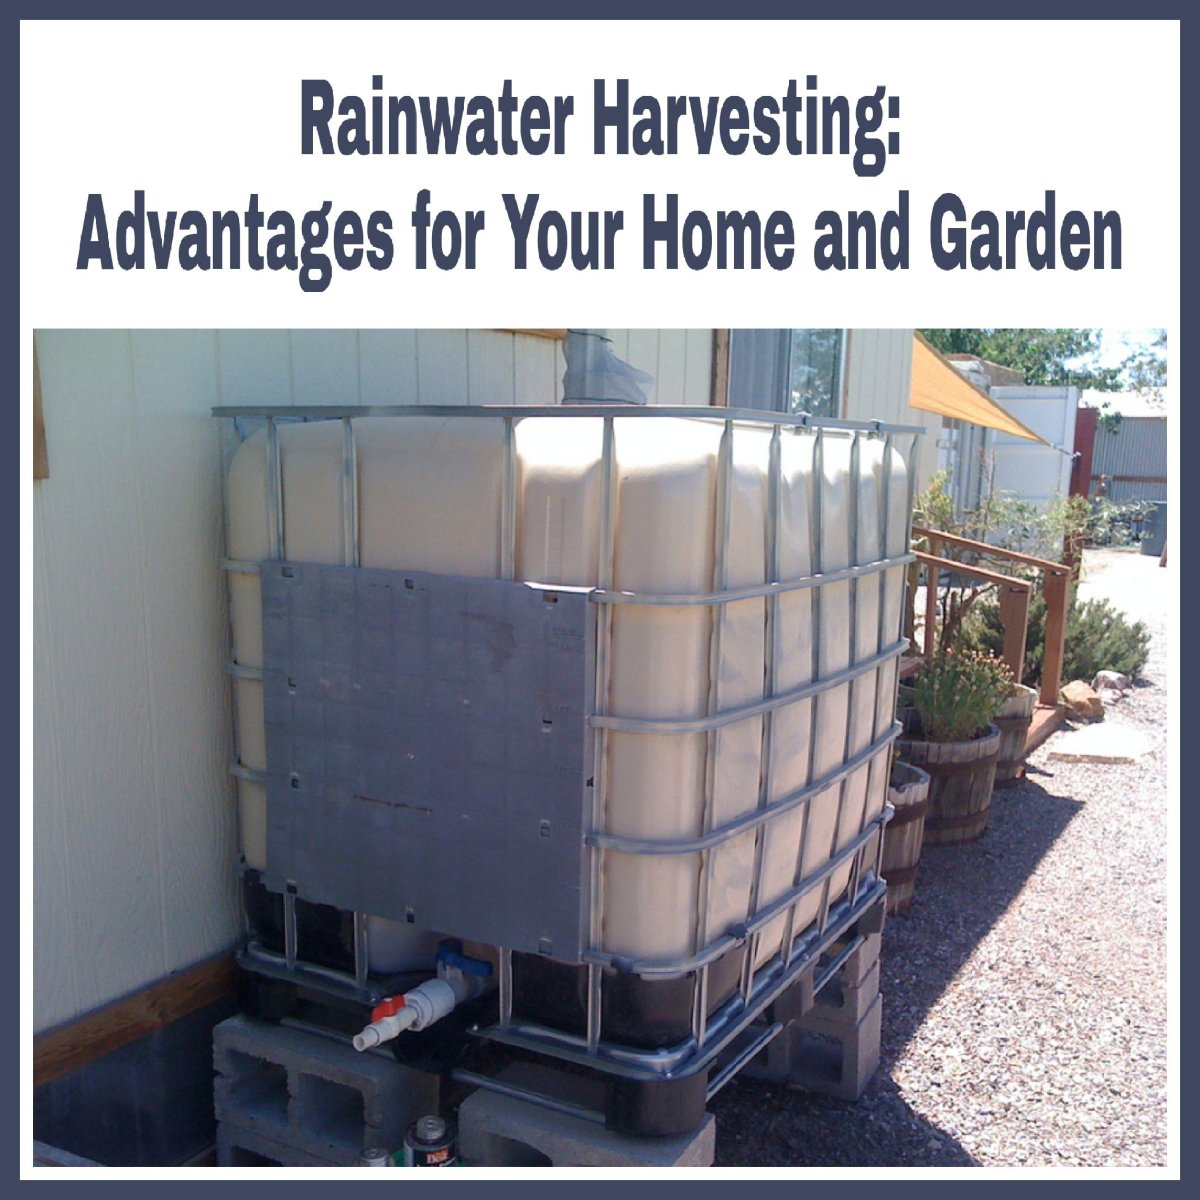 Rainwater Harvesting: Advantages for Your Home and Garden